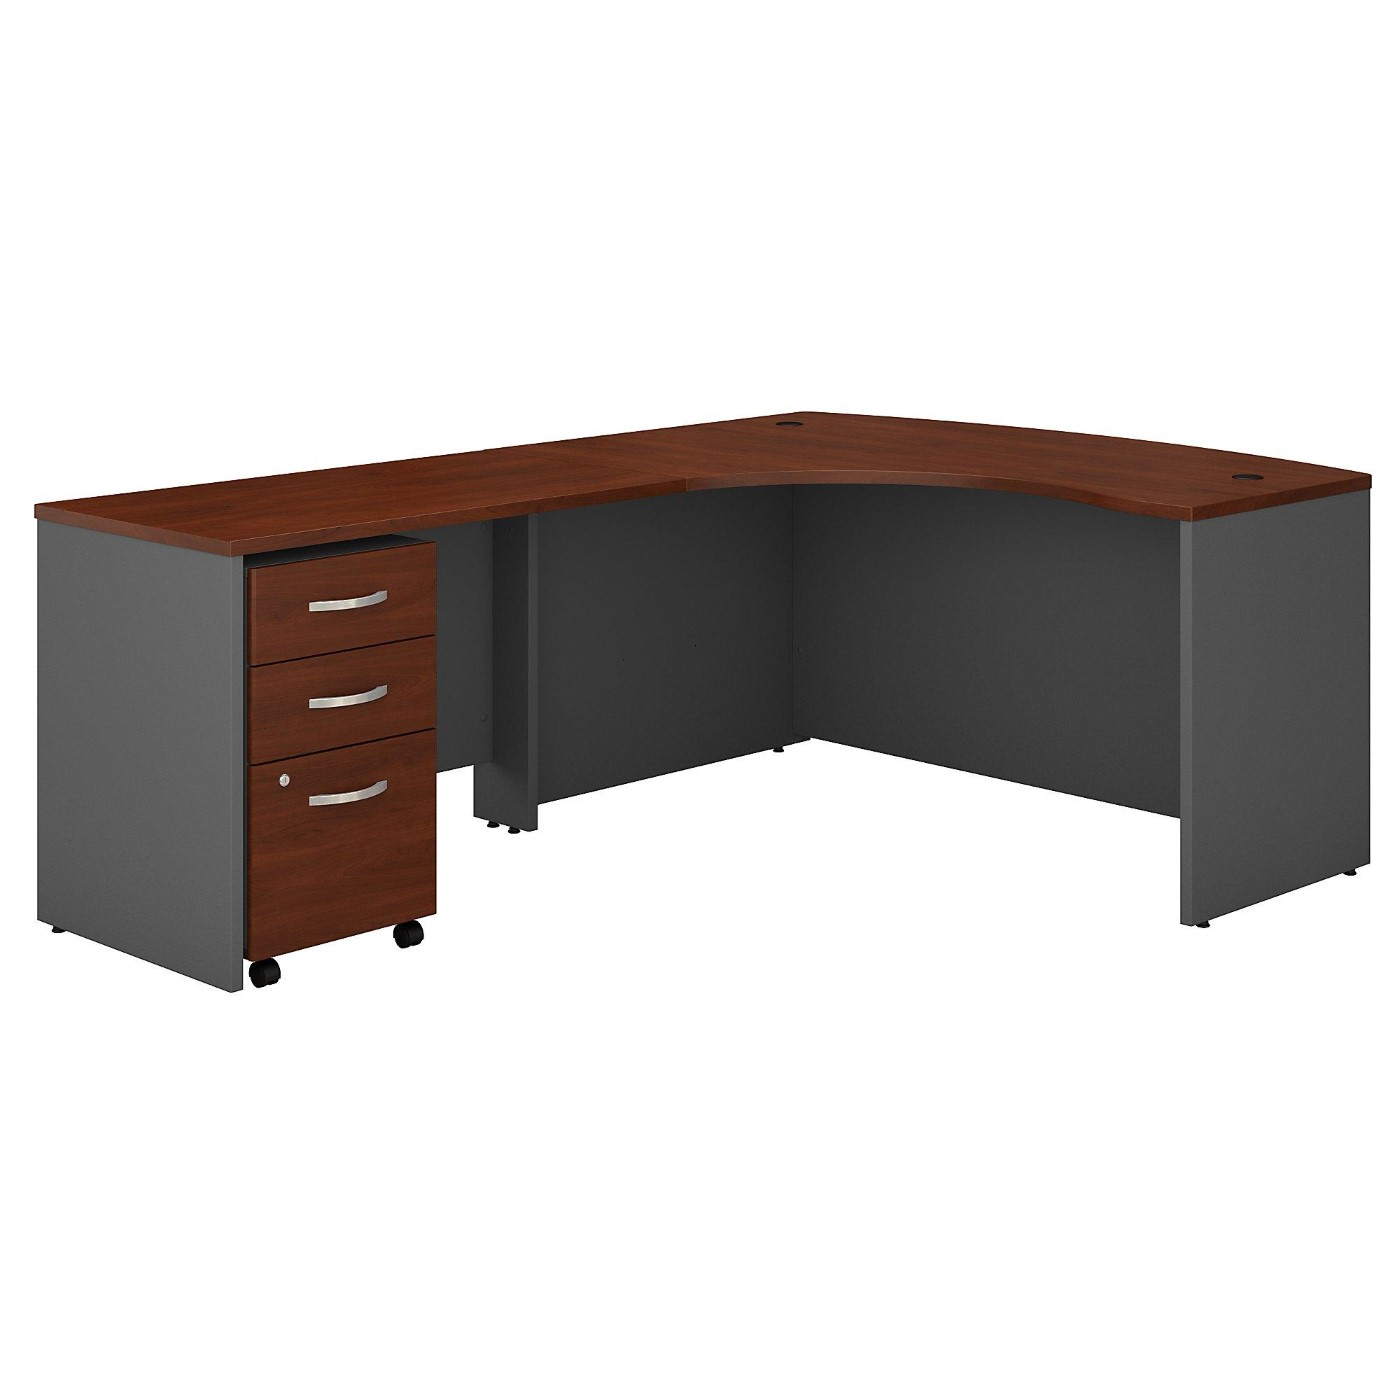 BUSH BUSINESS FURNITURE SERIES C RIGHT HANDED L SHAPED DESK WITH MOBILE FILE CABINET. FREE SHIPPING  VIDEO BELOW.